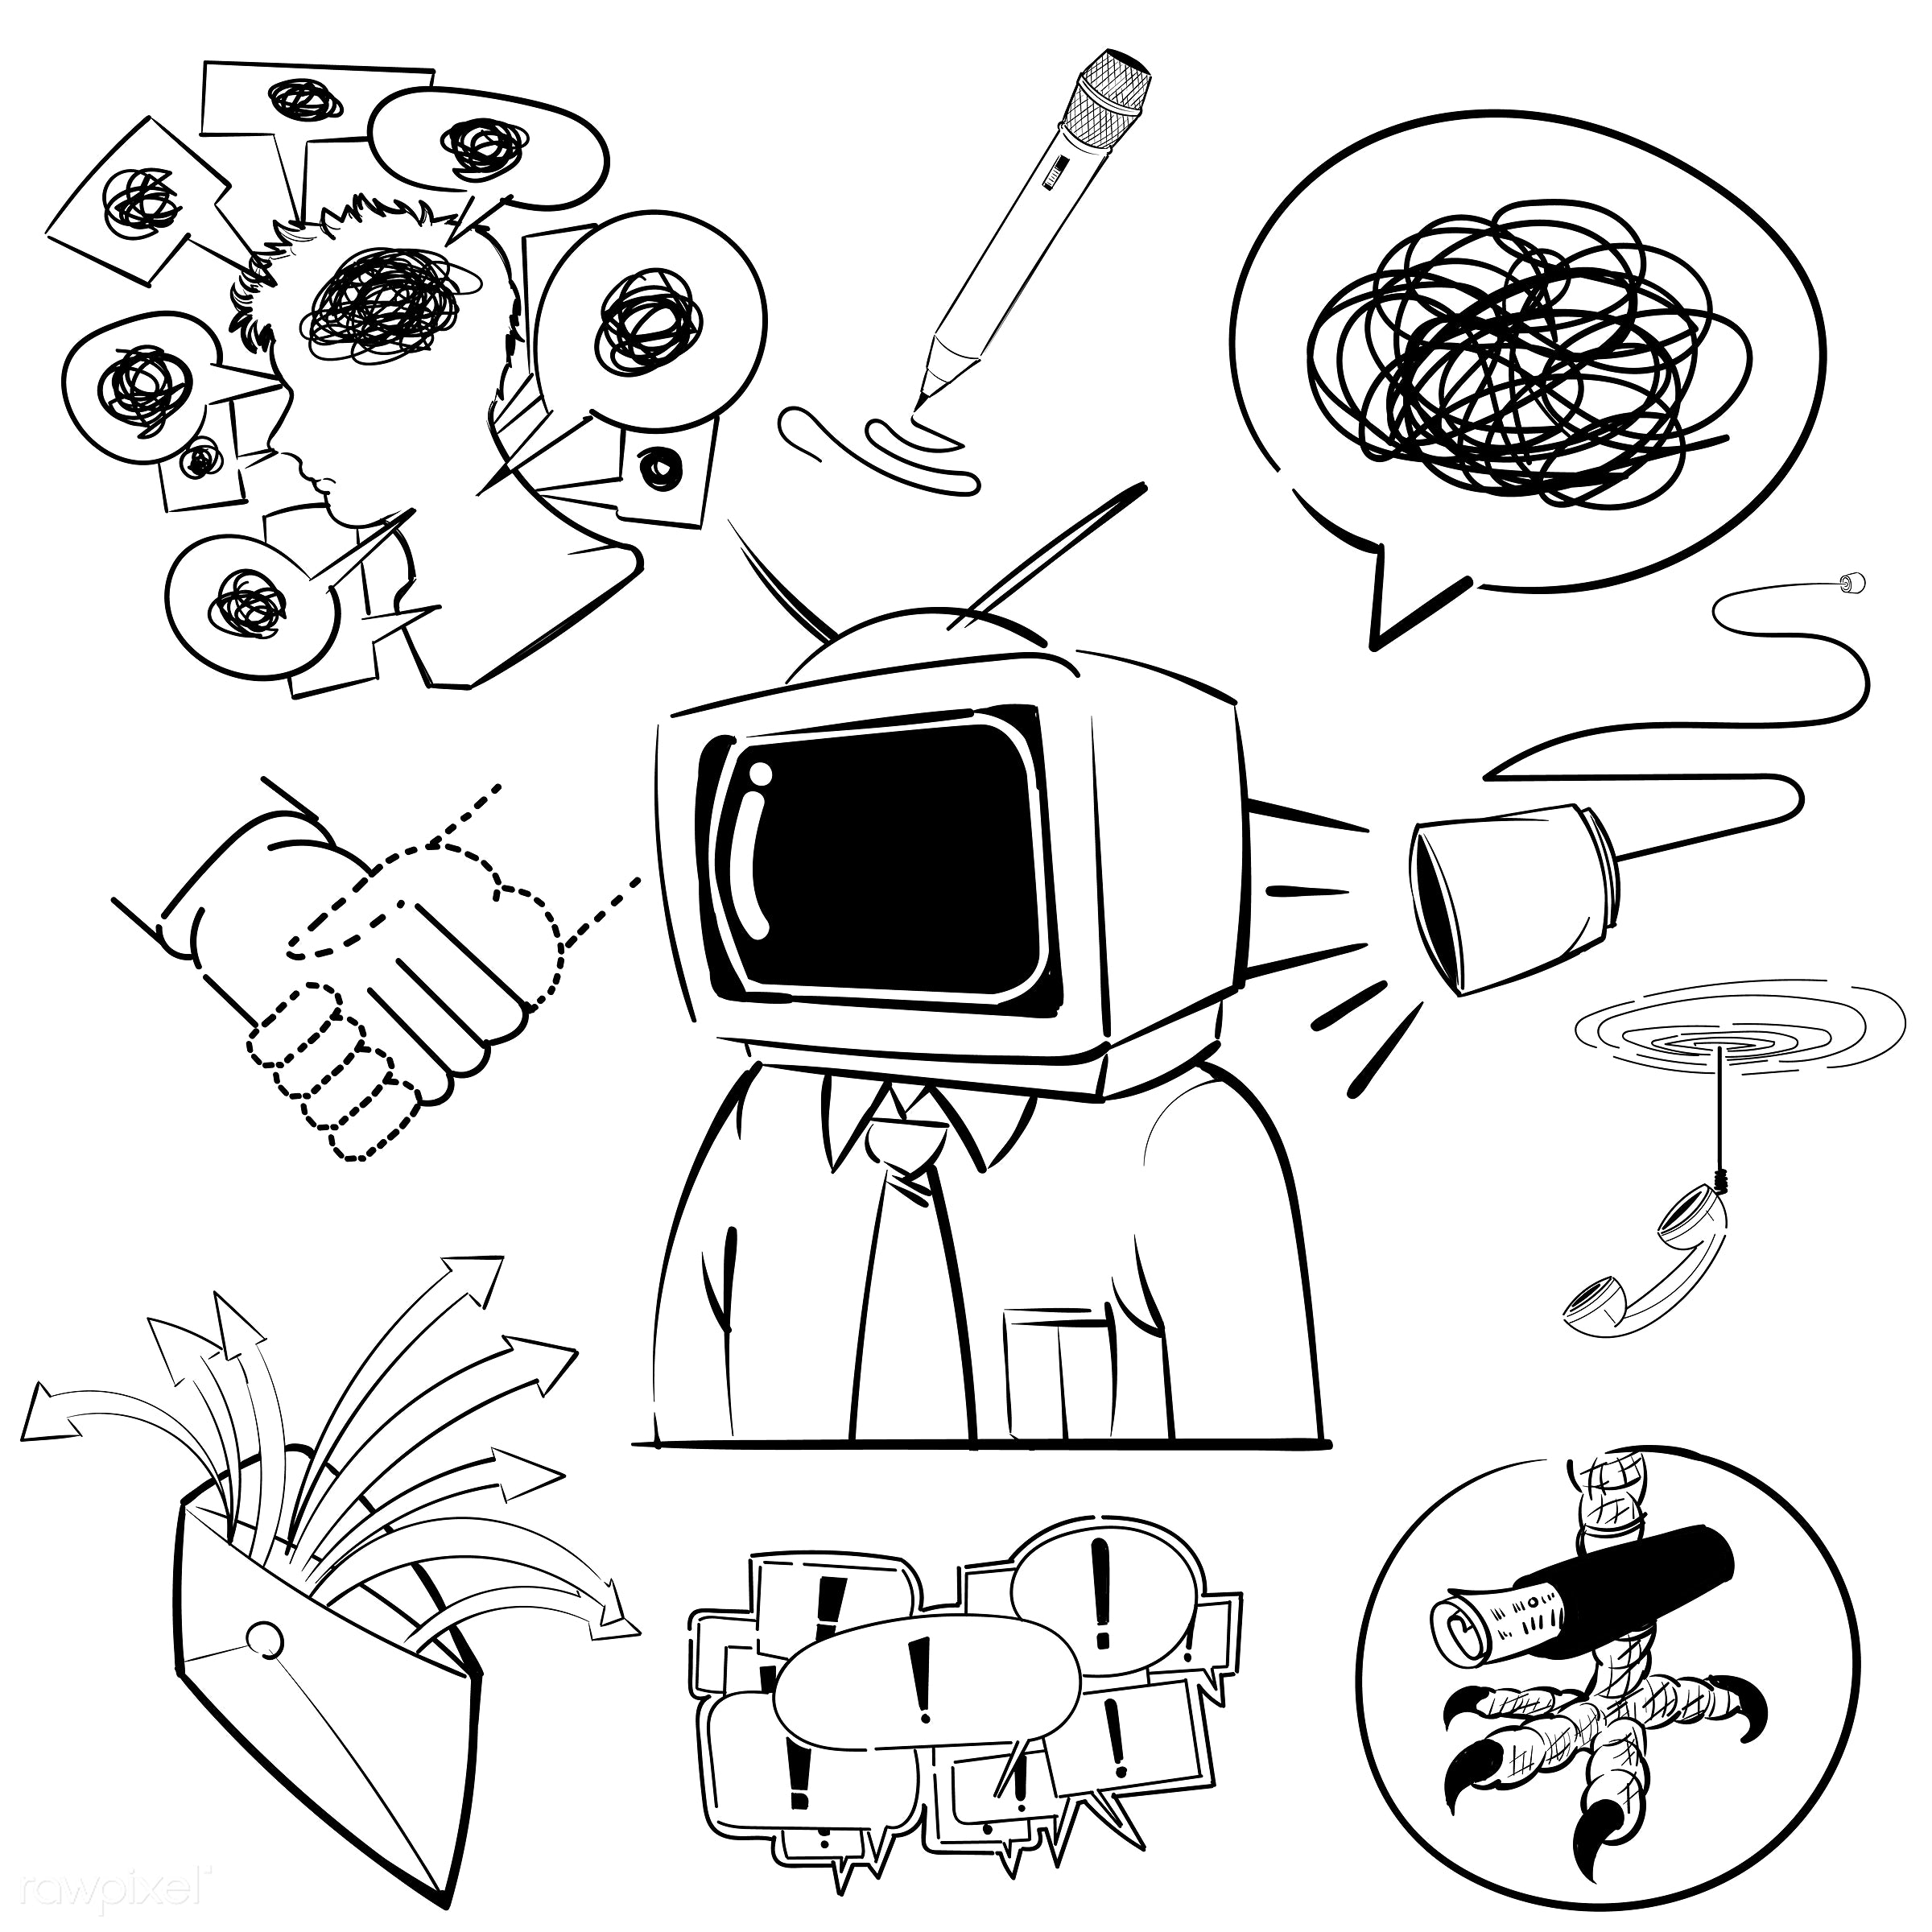 Hand drawing illustration set of communication icons - art, artwork, collection, communication, connection, creative,...